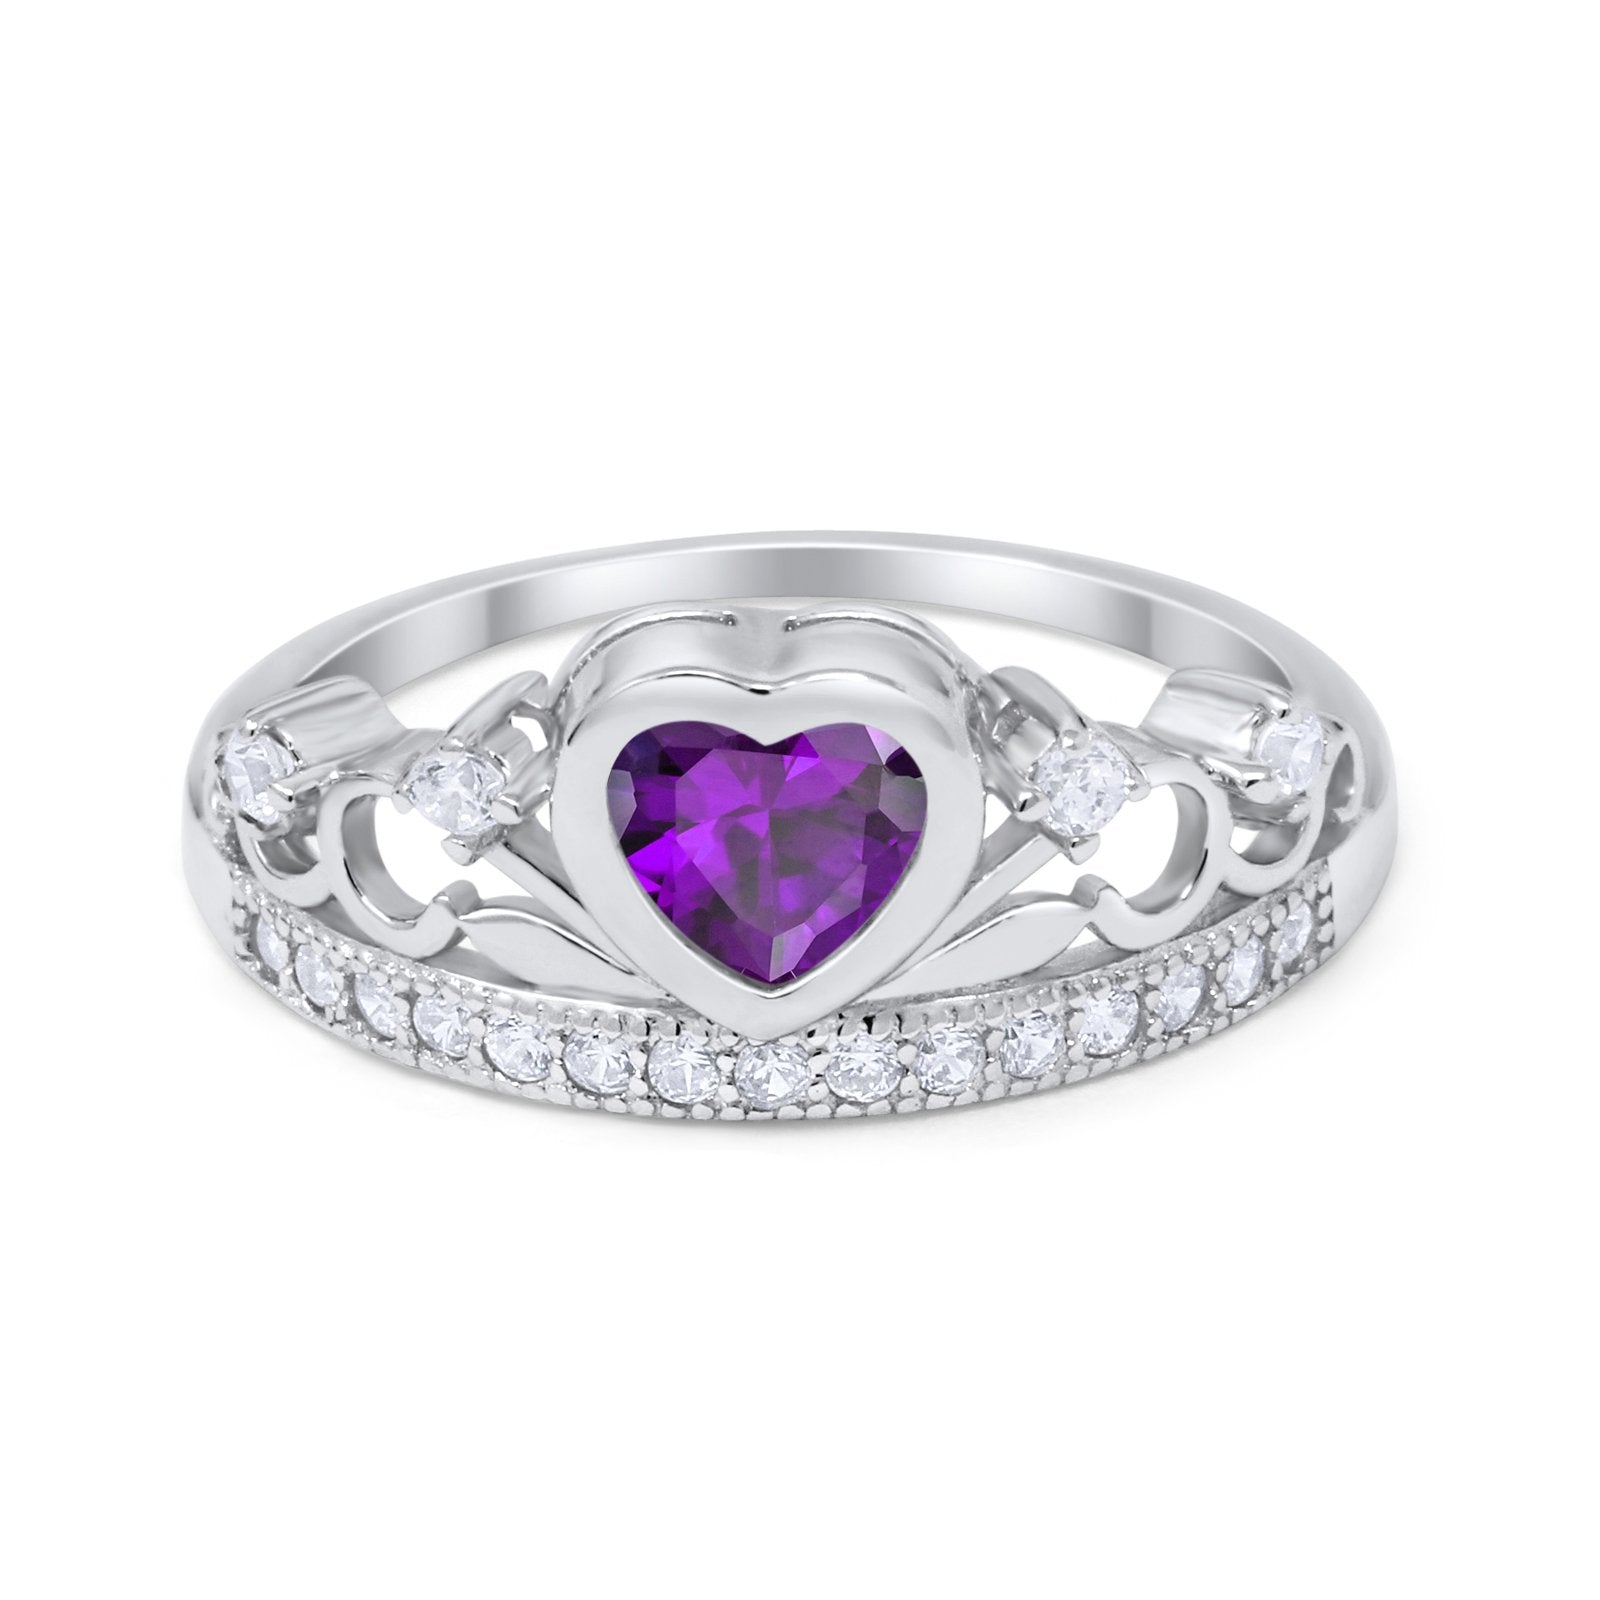 Heart Crown Ring Eternity Simulated Amethyst CZ 925 Sterling Silver